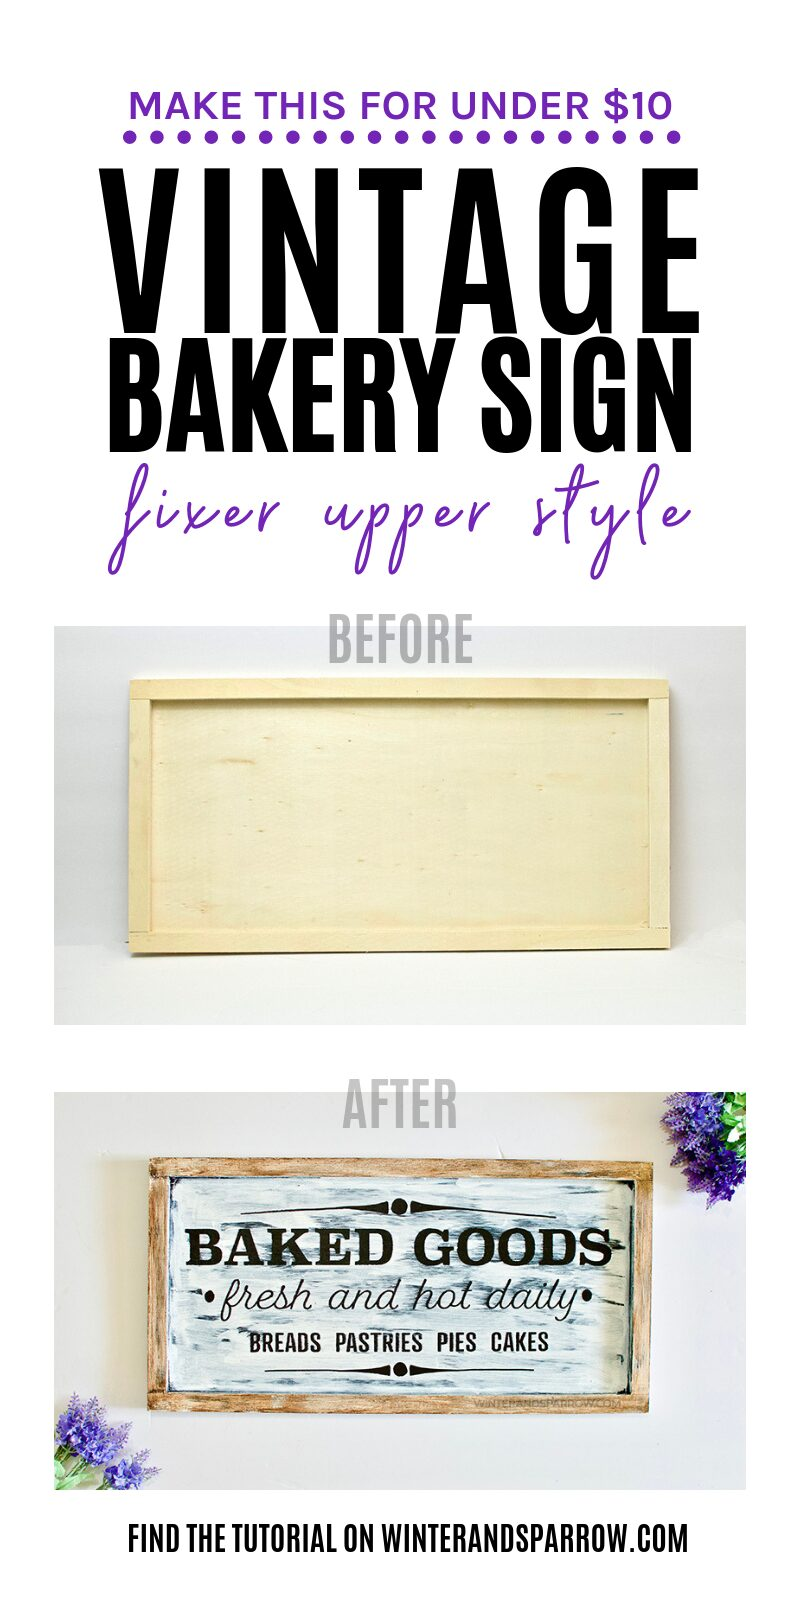 Make It For Under $10: Vintage Bakery Sign Fixer Upper Style [VIDEO] | winterandsparrow.com #vintagebakerysignfixerupper #vintagebakerysign #farmhousesigns #bakedgoodssign